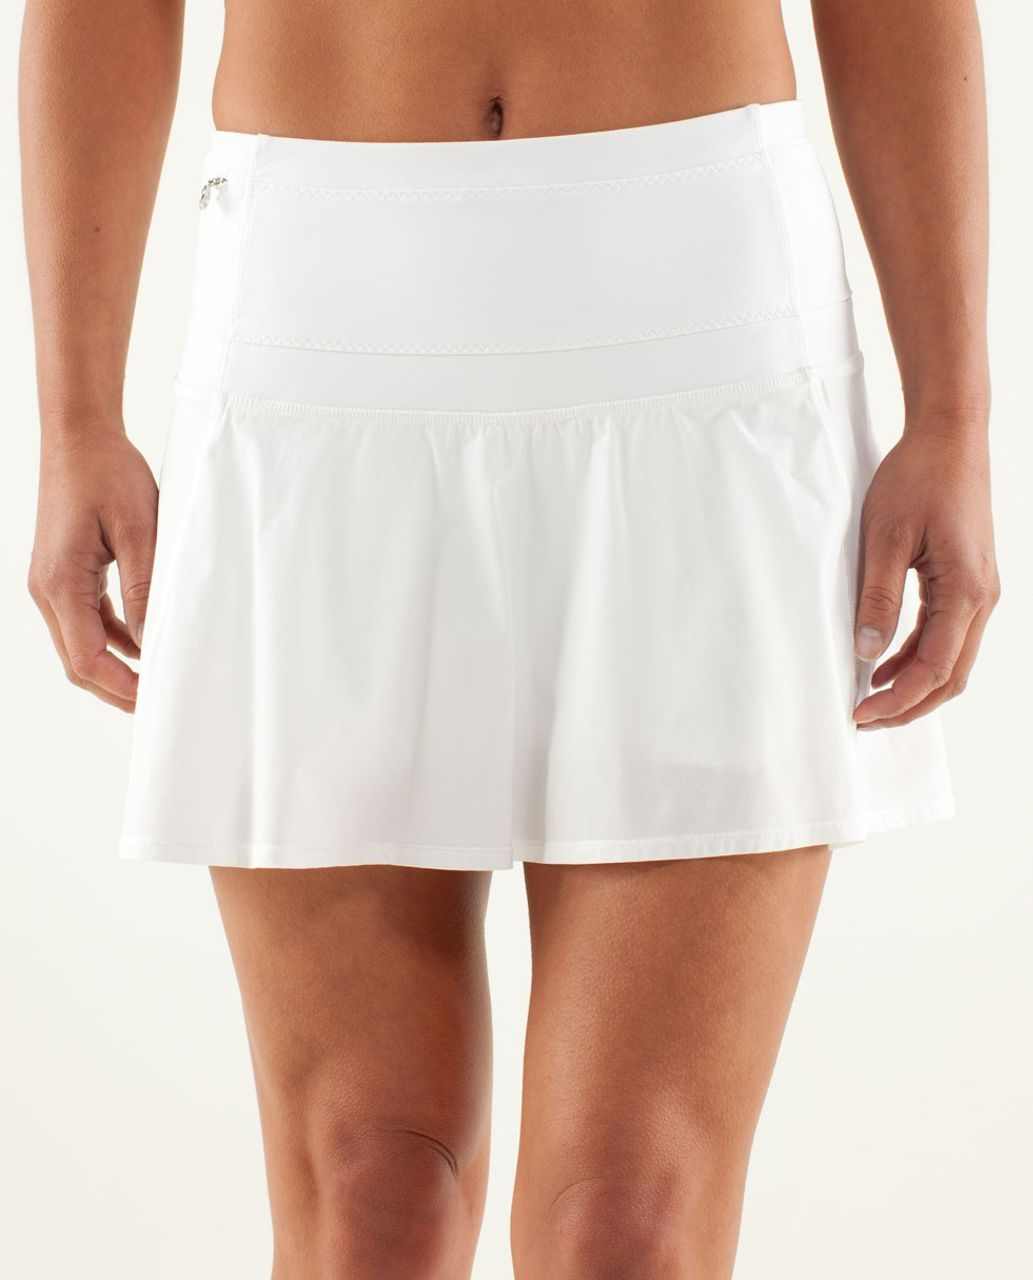 adef2d6797 Lululemon Hot Hitter Skirt - White - lulu fanatics